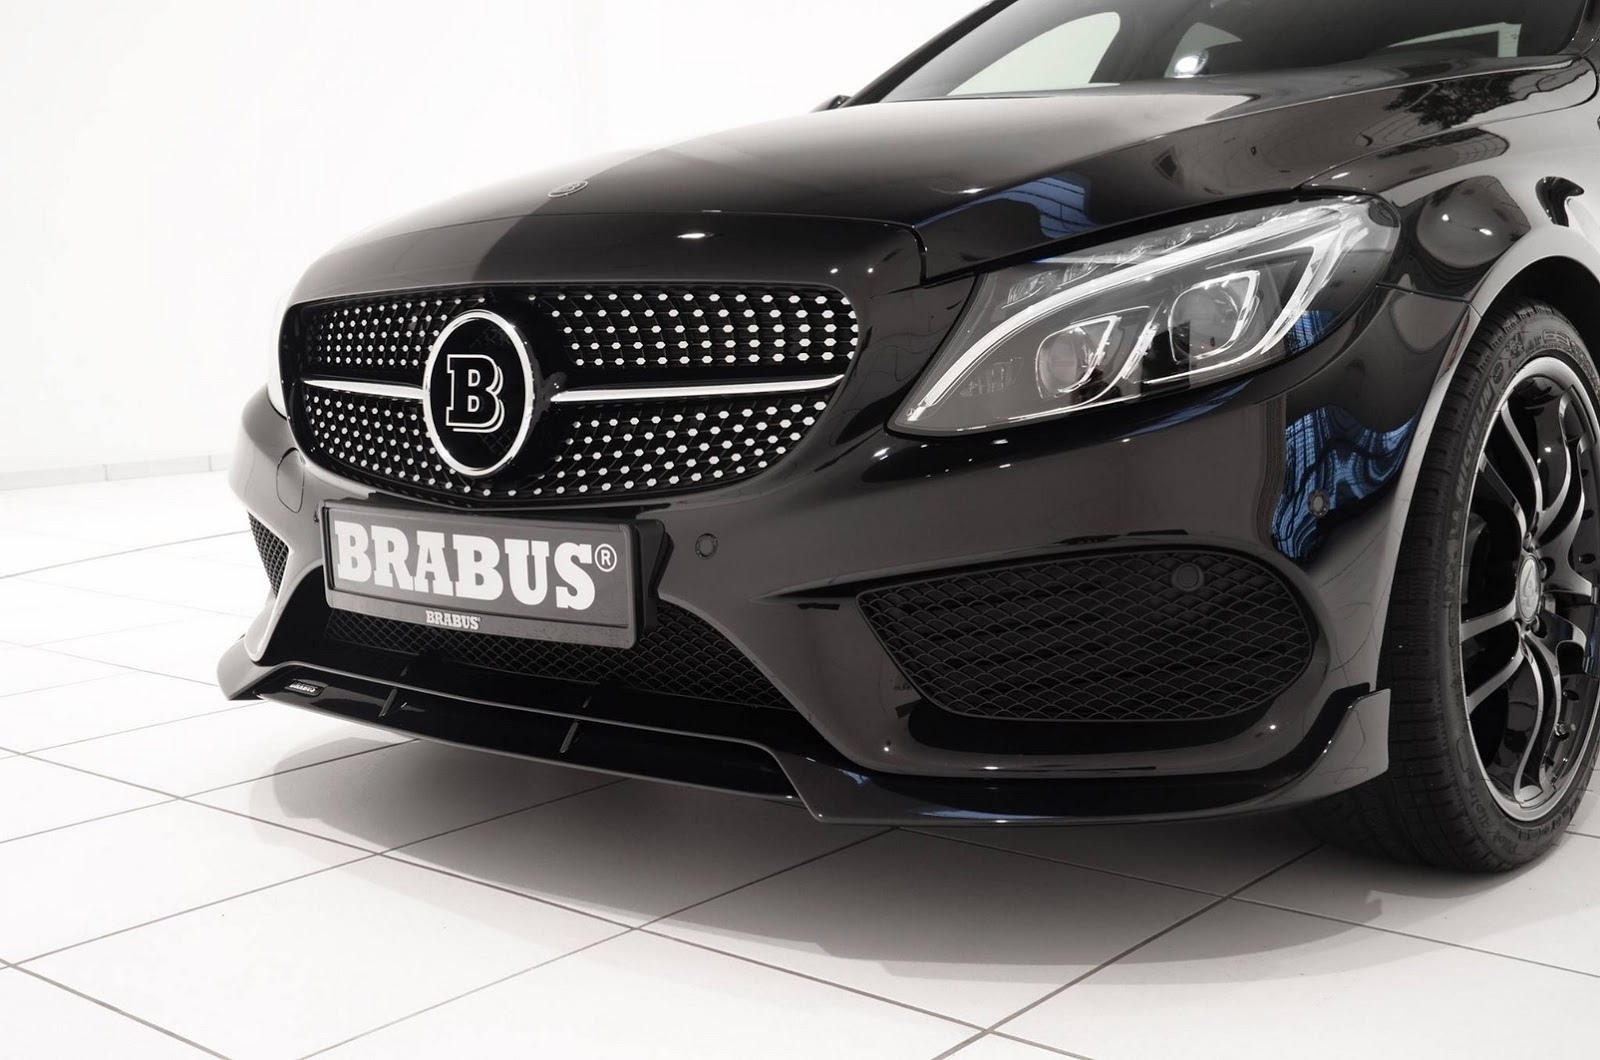 Presenting the brabus mercedes benz c450 amg 4matic for Mercedes benz brabus amg